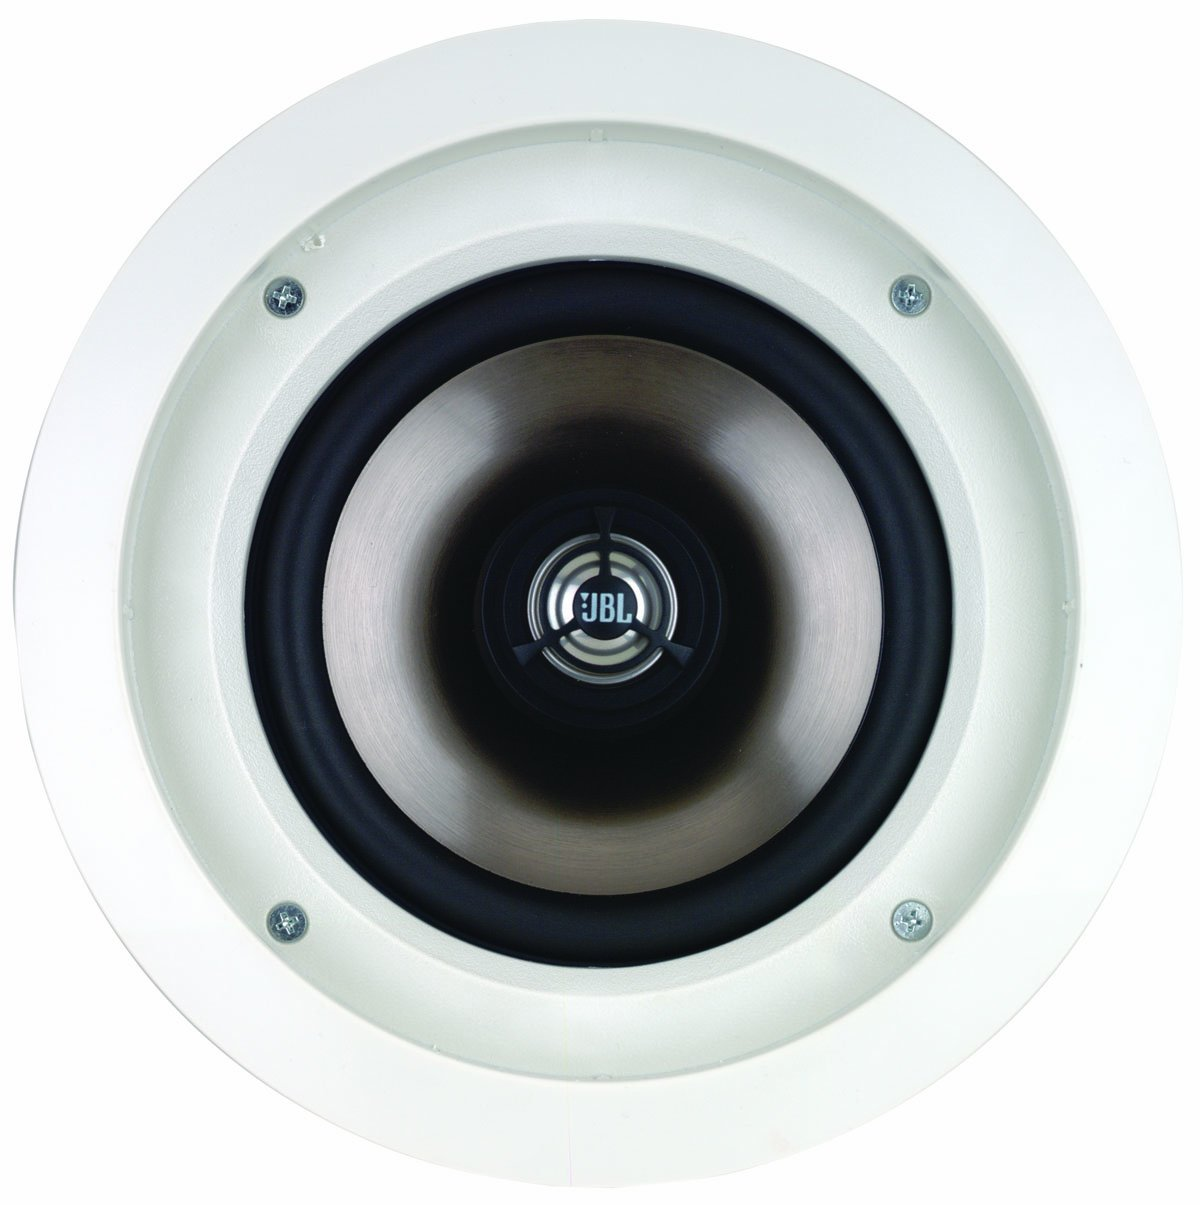 Leviton AEC65 Architectural Edition Powered by JBL 6.5-Inch In-Ceiling Speaker, White